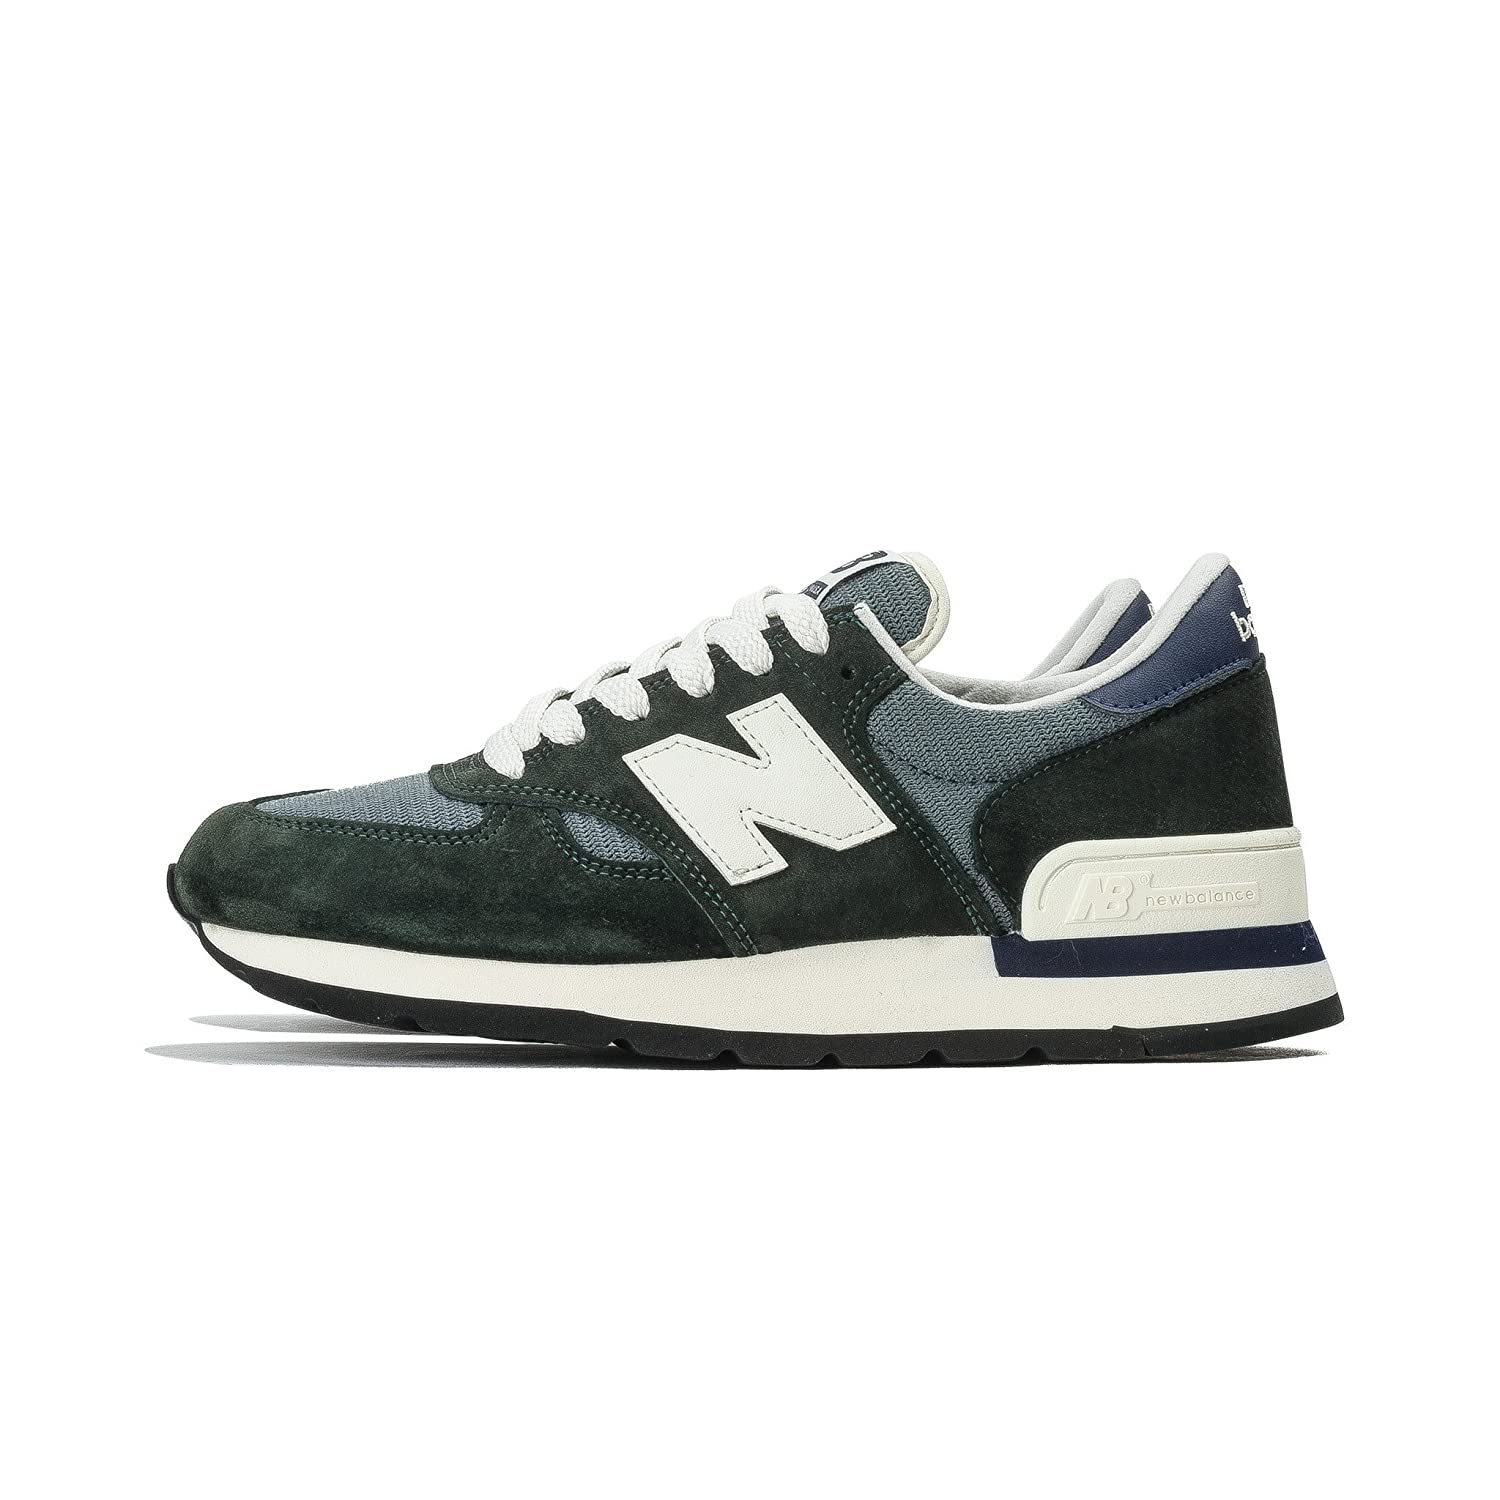 new product dcc93 2c674 Amazon.com: New Balance Men's 990 (Made In USA) Running ...